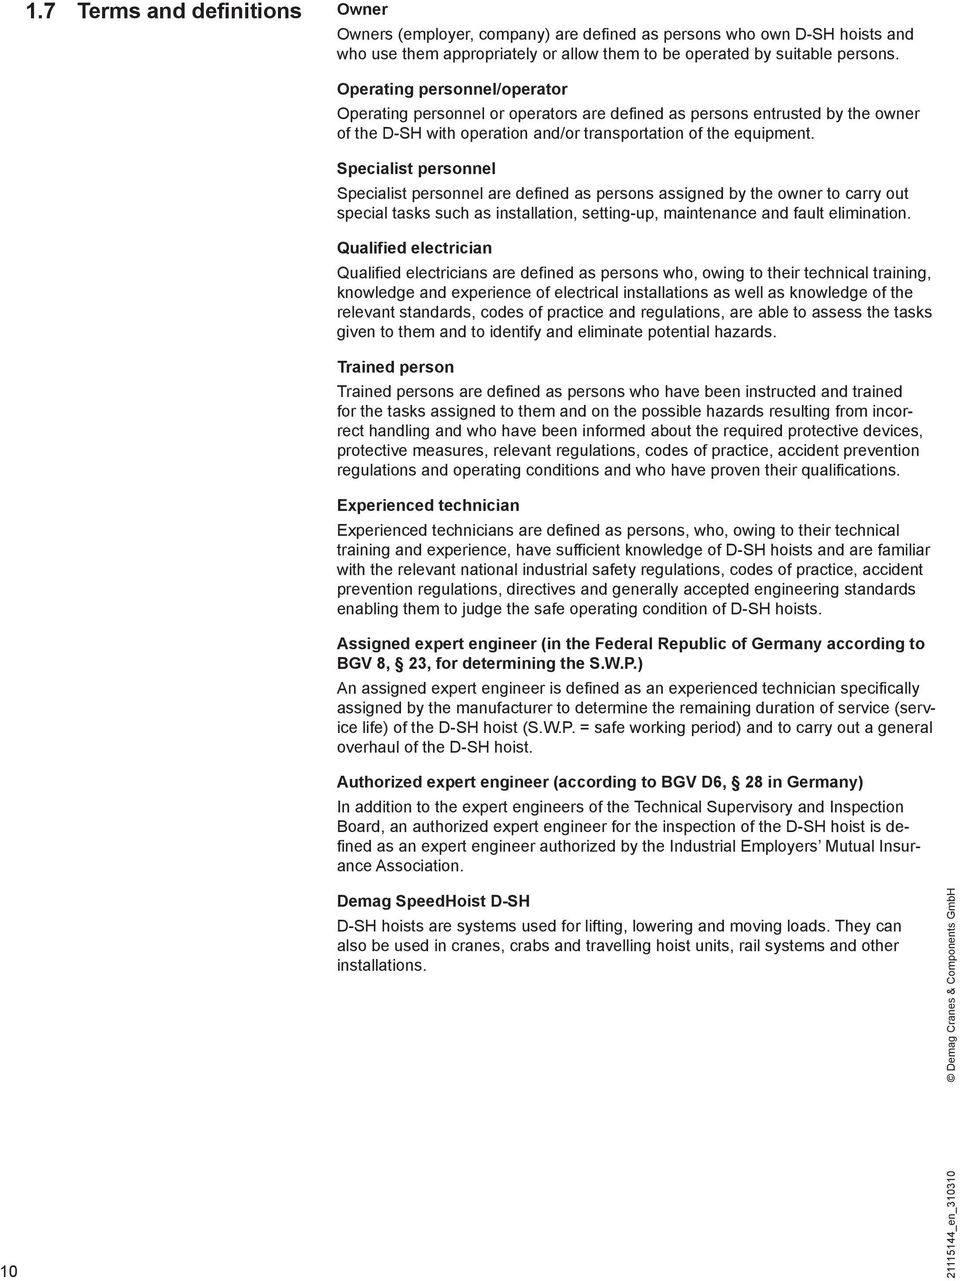 Operating Instructions Demag Speedhoist D Sh Pdf 20 Ton Wiring Diagram Specialist Personnel Are Defined As Persons Assigned By The Owner To Carry Out Special